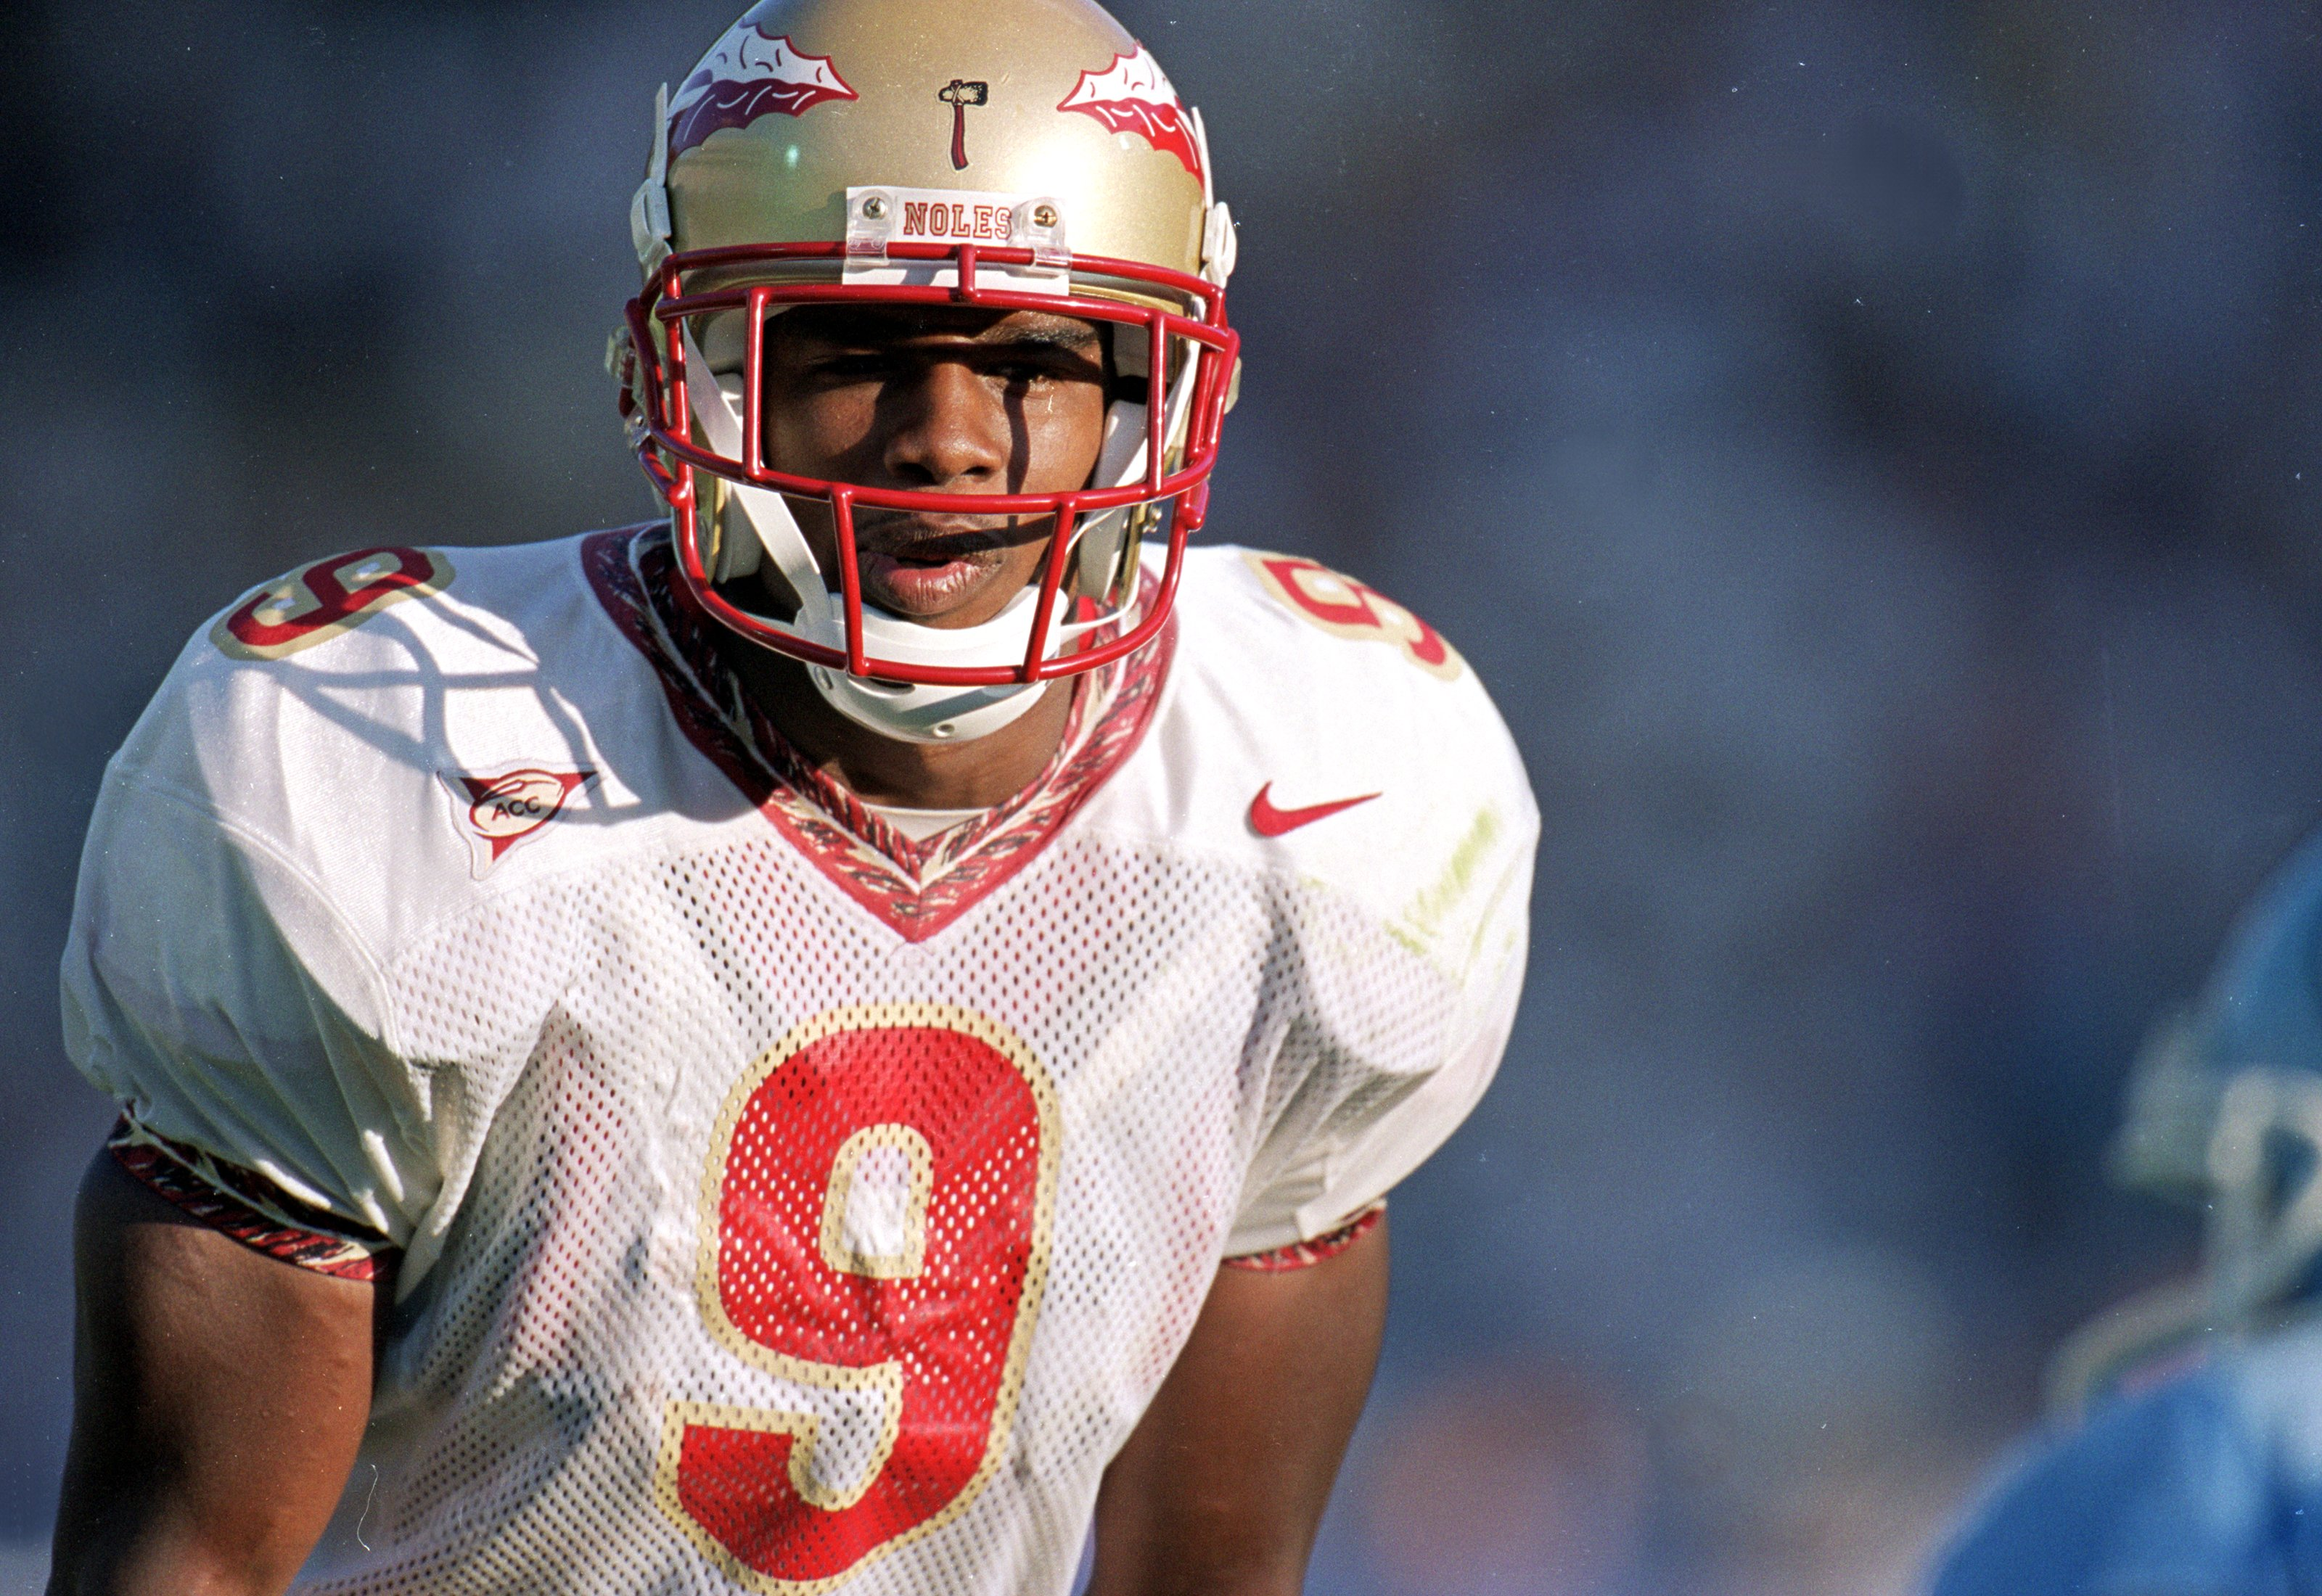 25 Sep 1999: Peter Warrick #9 of the Florida State Seminoles gets ready to run during the game against the North Carolina Tar Heels at the Kenan Stadium in Chapel Hill, North Carolina. The Seminoles defeated the Tar Heels 42-10.